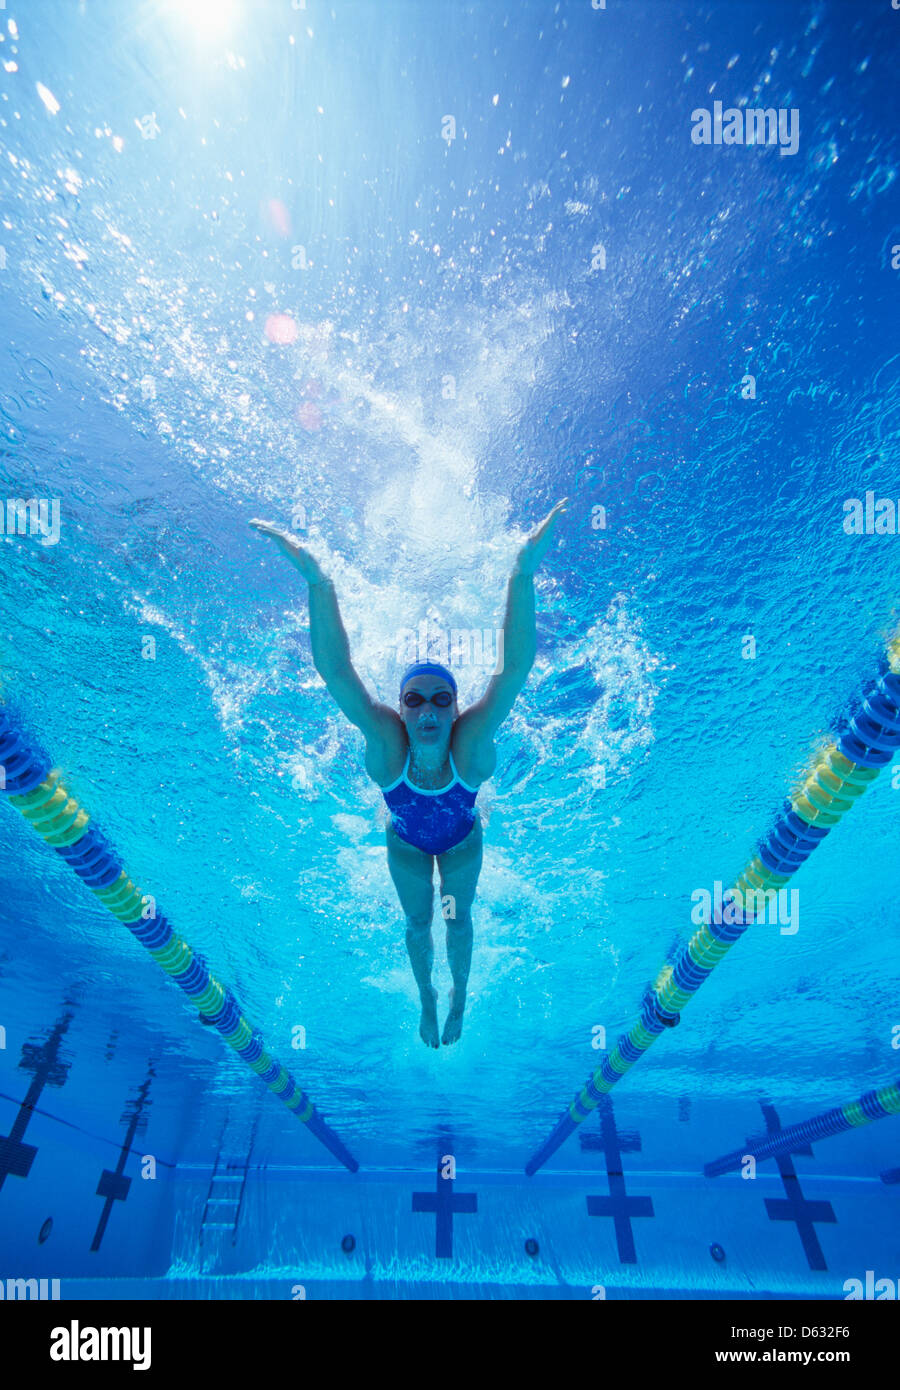 La longueur totale des mutilations nageur dans United States maillot de natation en piscine Photo Stock